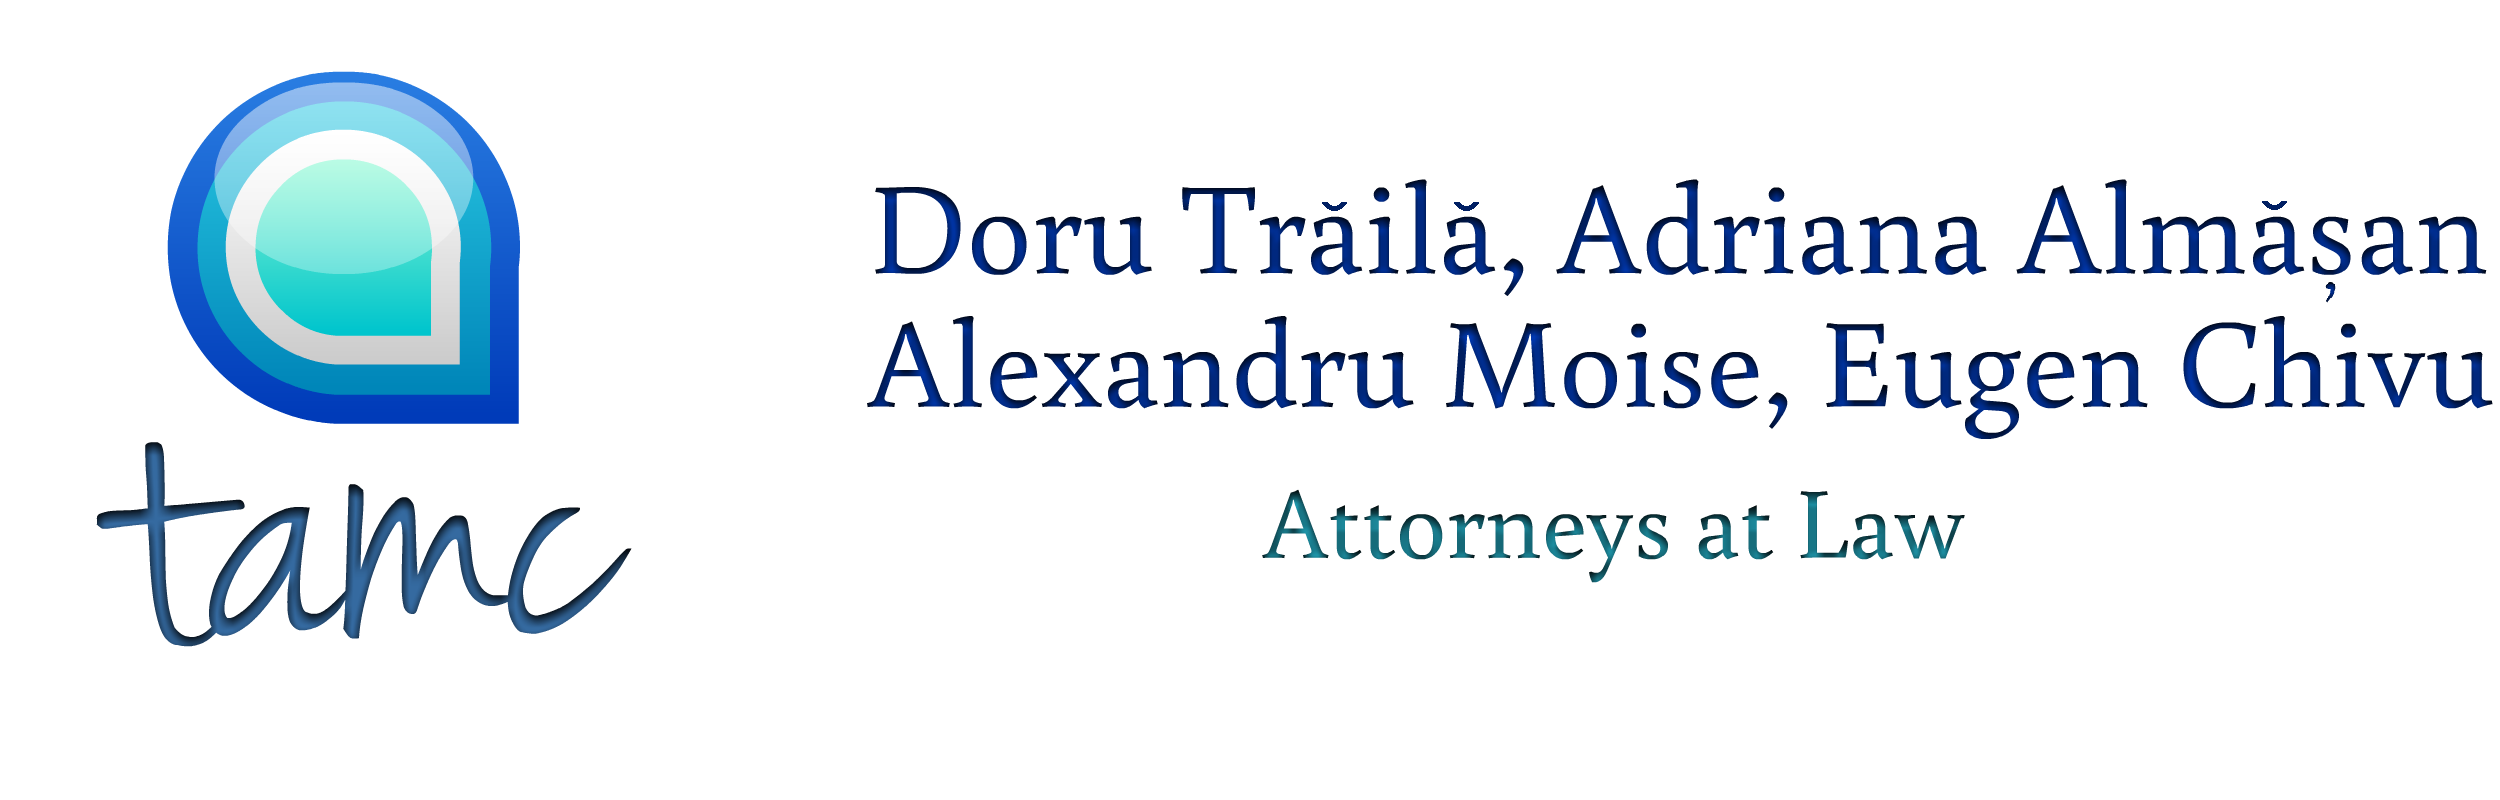 TAMC (Doru Traila, Adriana Almasan, Alexandru Moise & Eugen Chivu) - Attorneys at Law